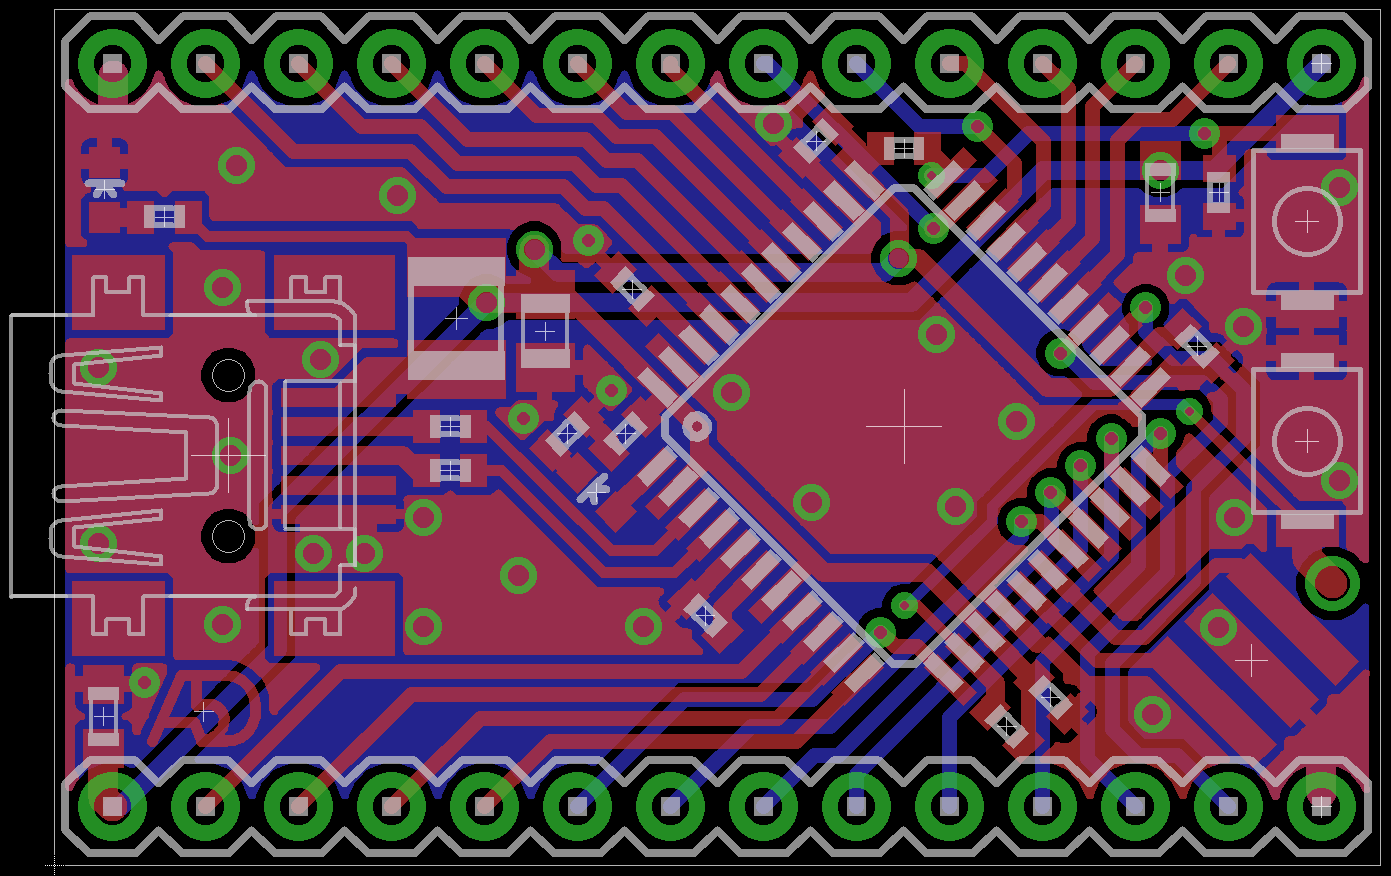 Atmegaxxu4 Development Board A5d Project Hub An Eagle Example Schematic I Will Also Add Some Images Of The 2a Version Boards Ordered And Assembled Included Available For Download Here Sample